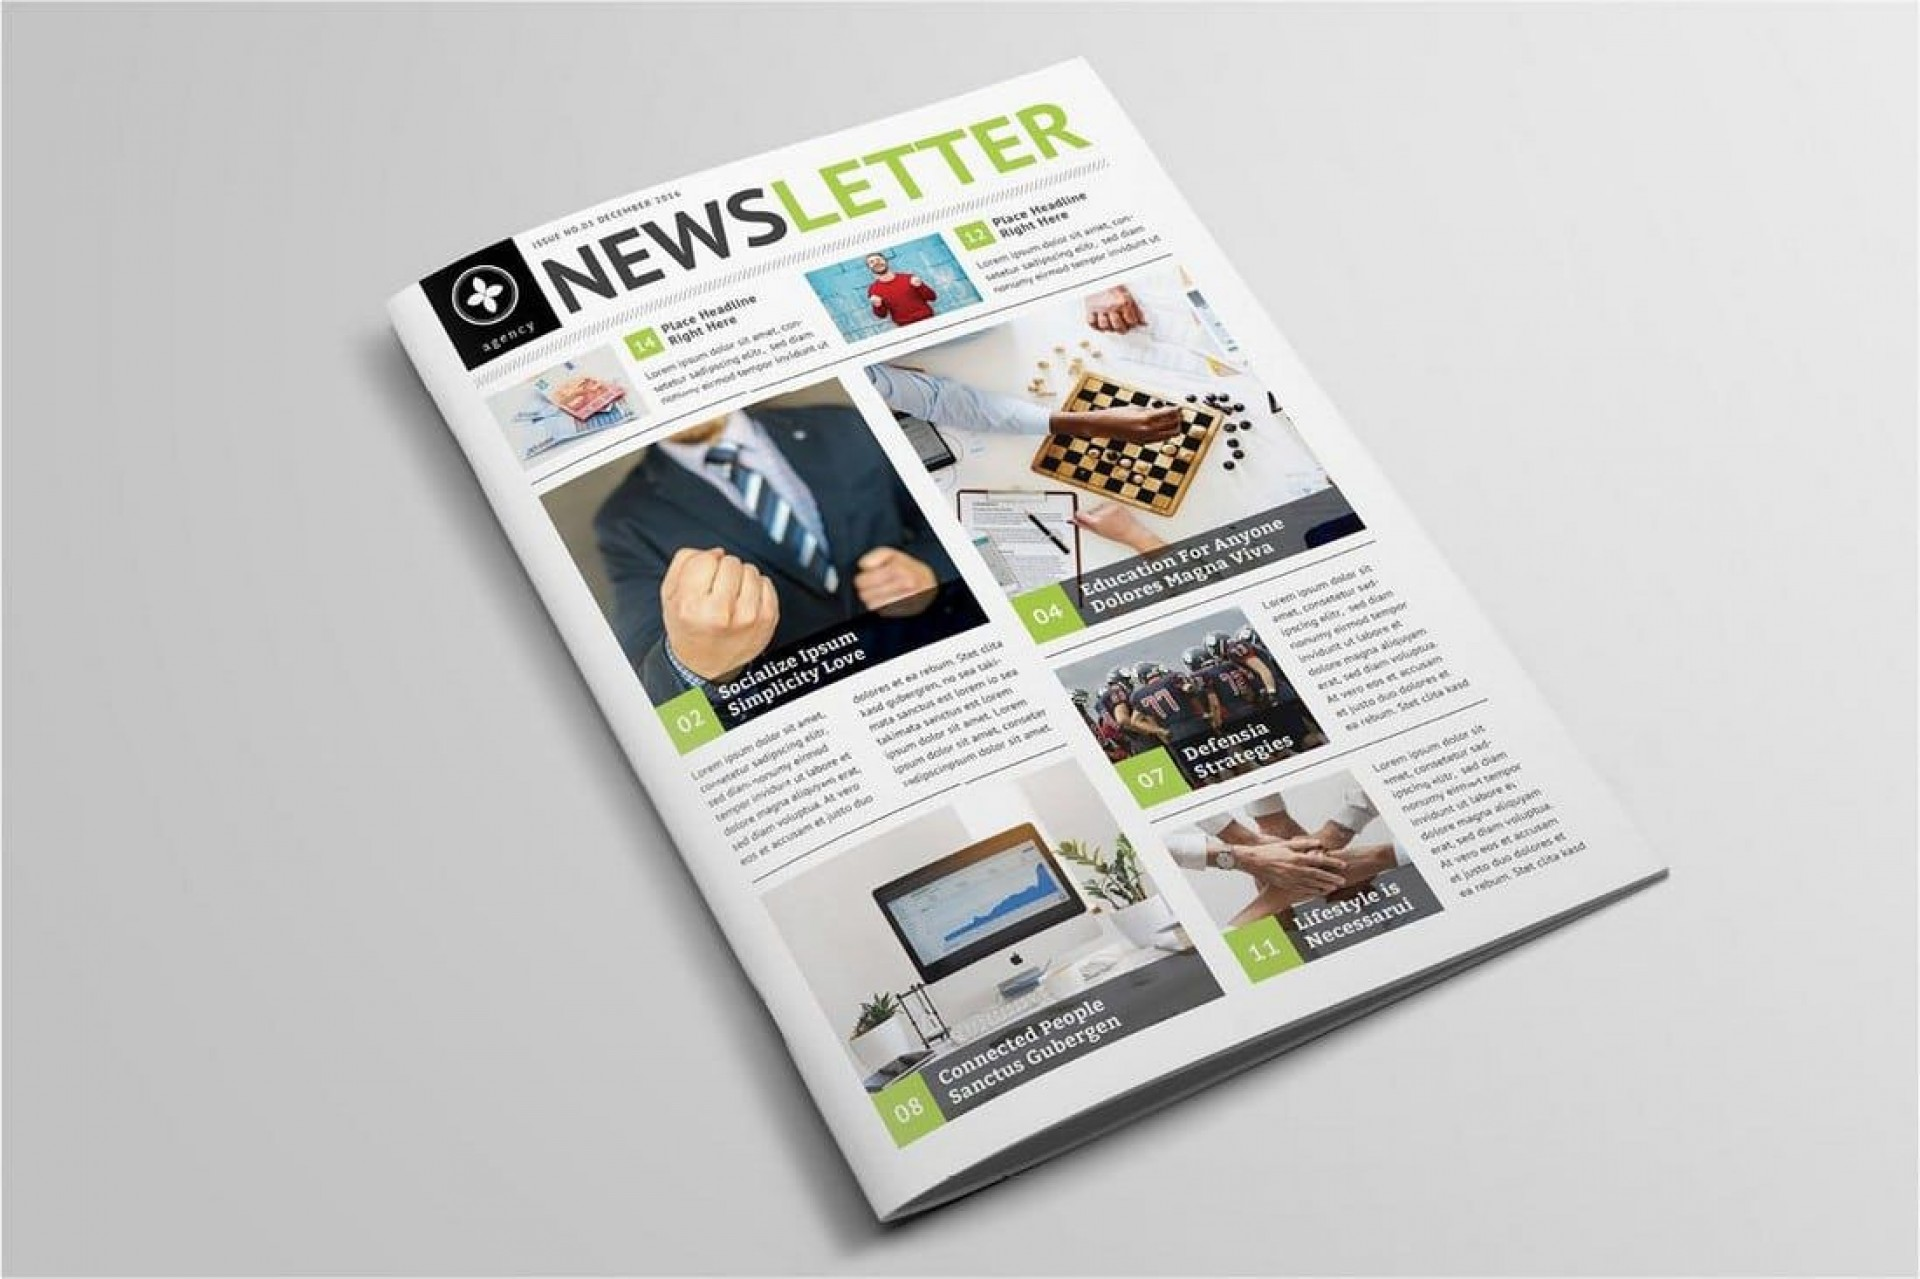 009 Stupendou Indesign Cs6 Newsletter Template Free Download Image 1920